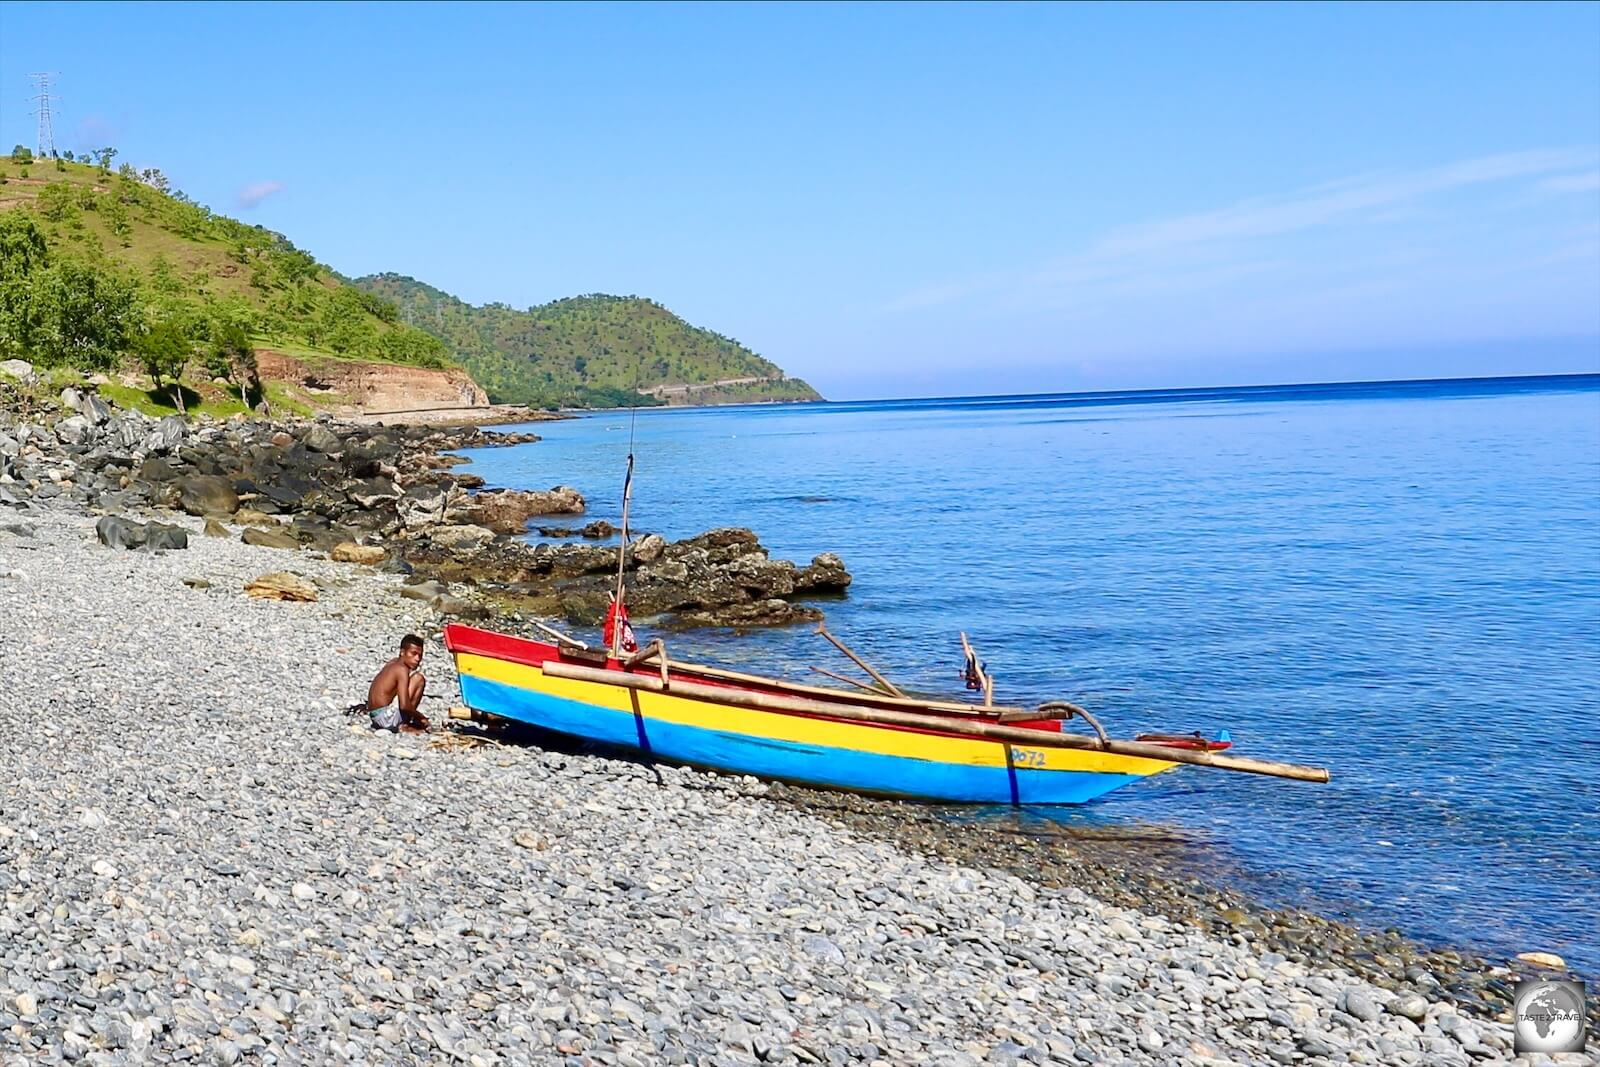 A colourful, traditional, wooden fishing boat on a beach east of Dili.